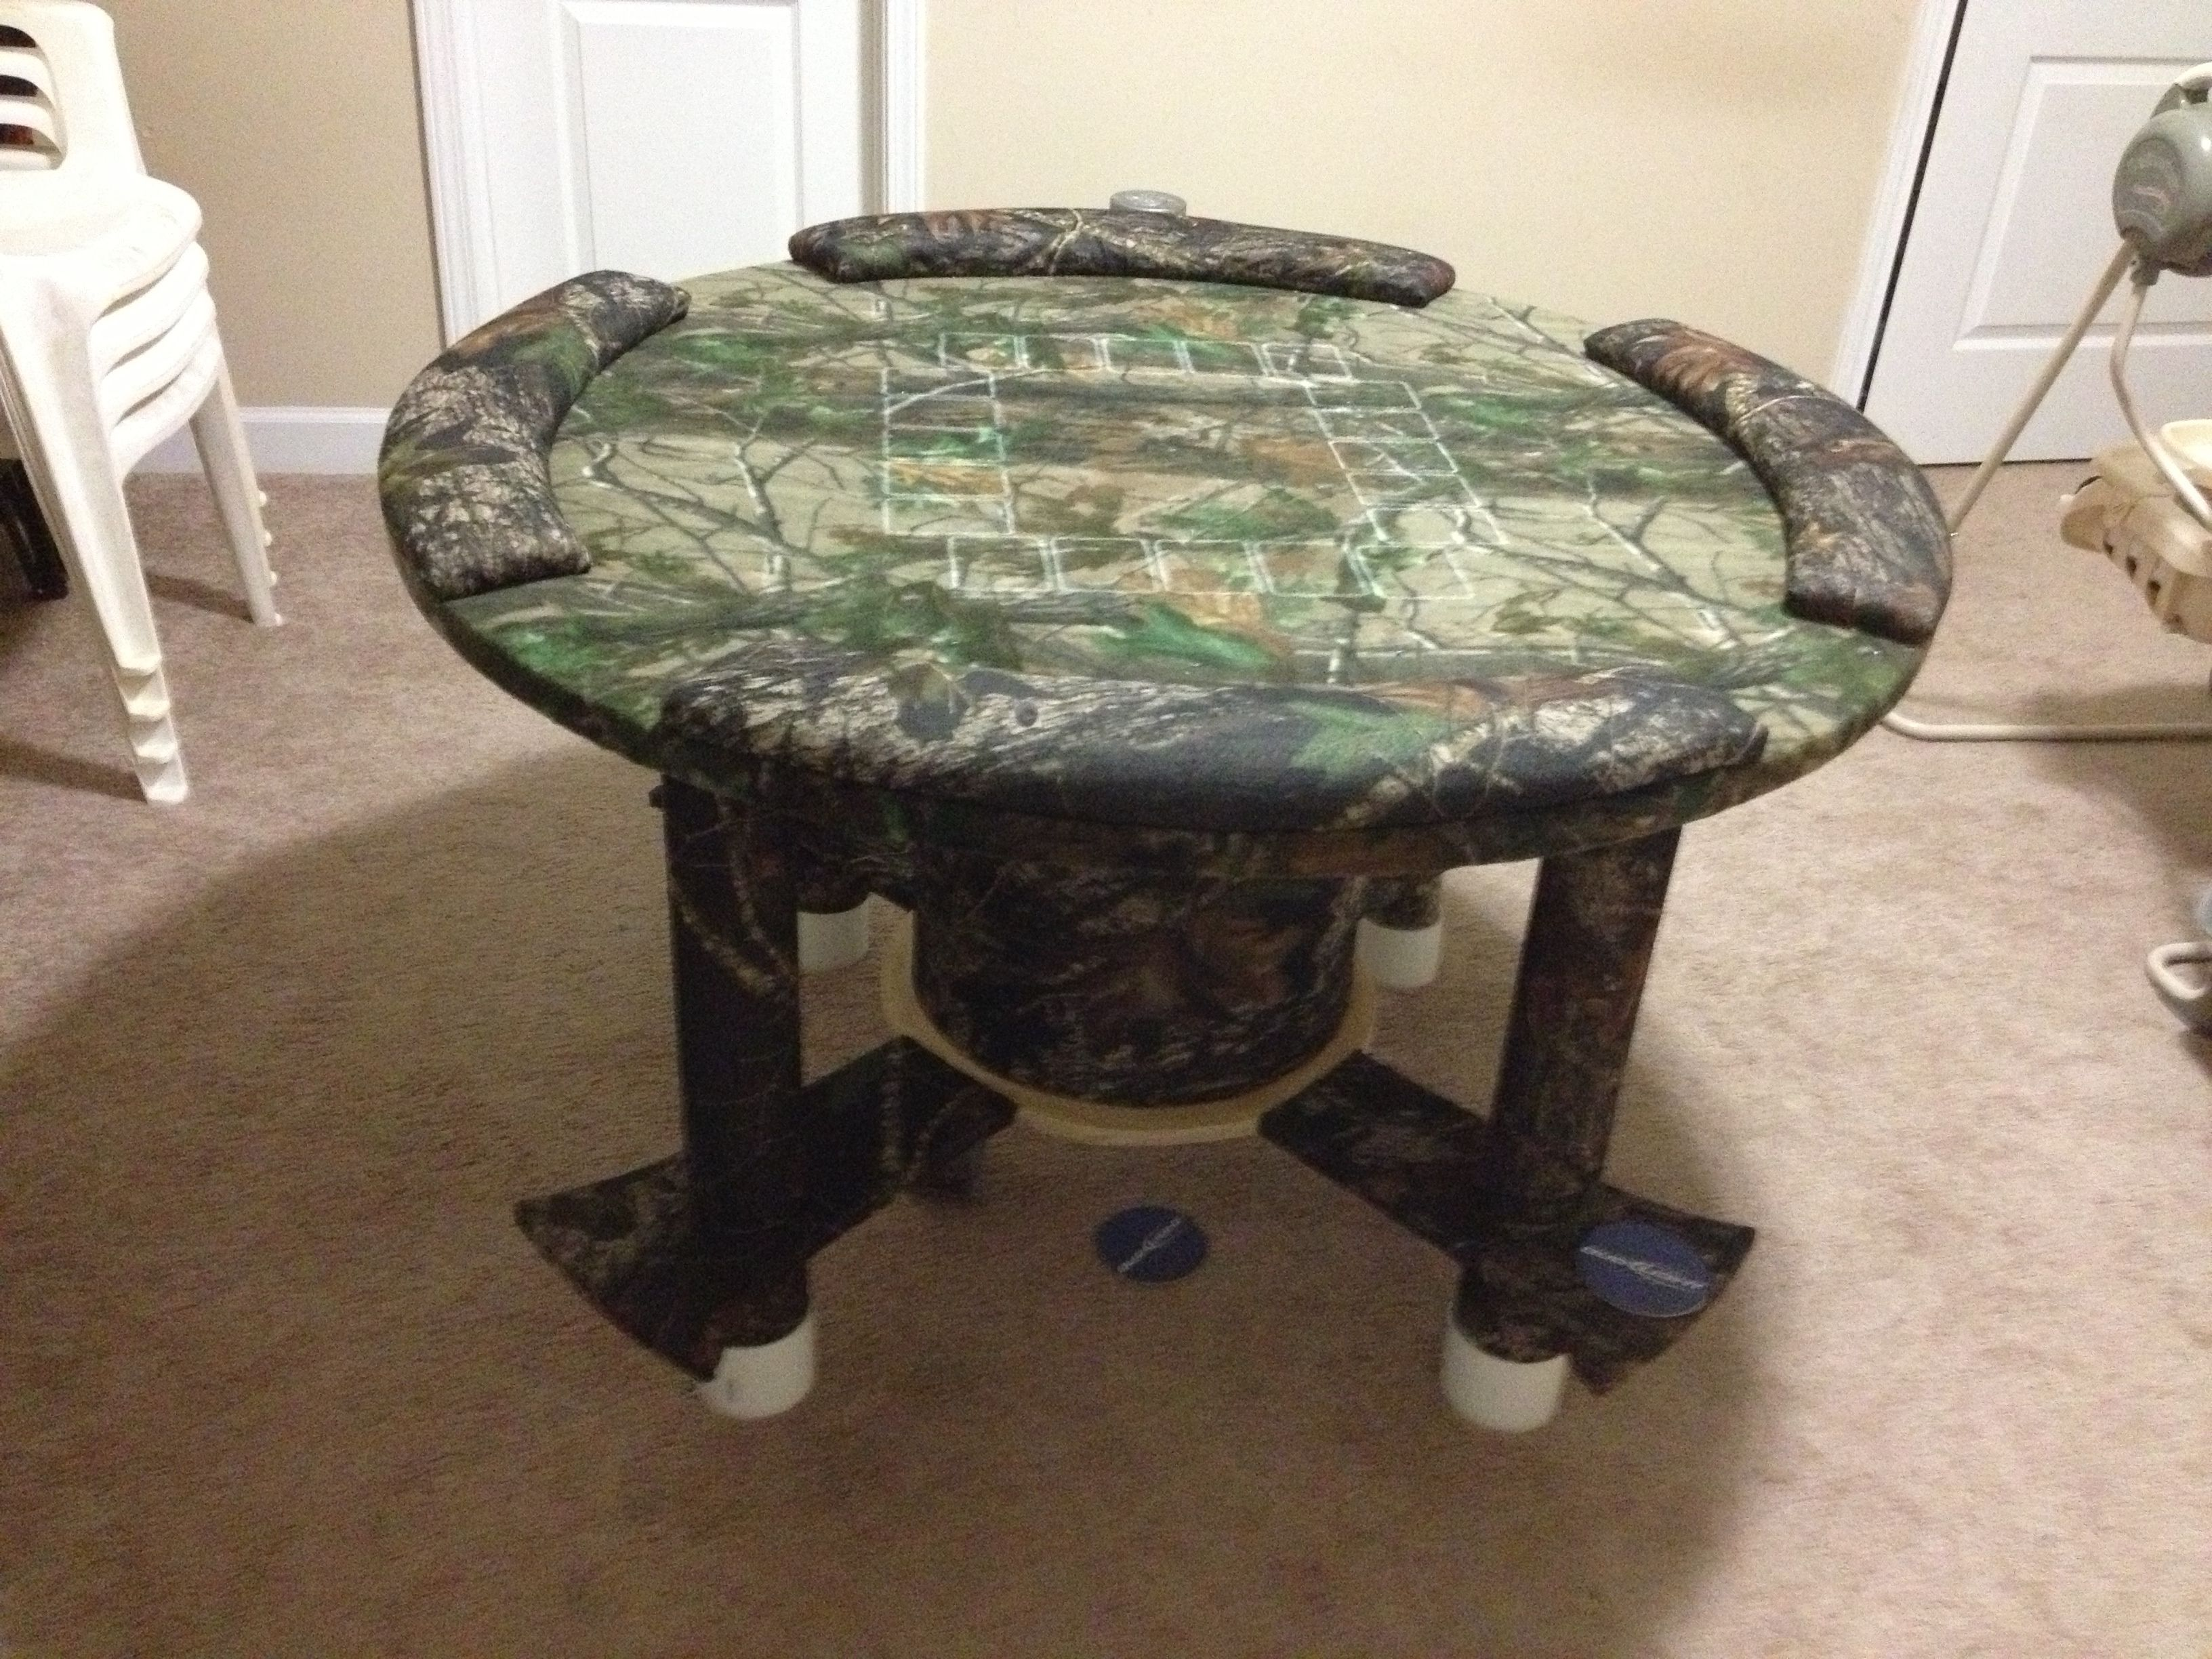 Homemade Poker Table Out Of A Spool Crafts Diy Poker Table